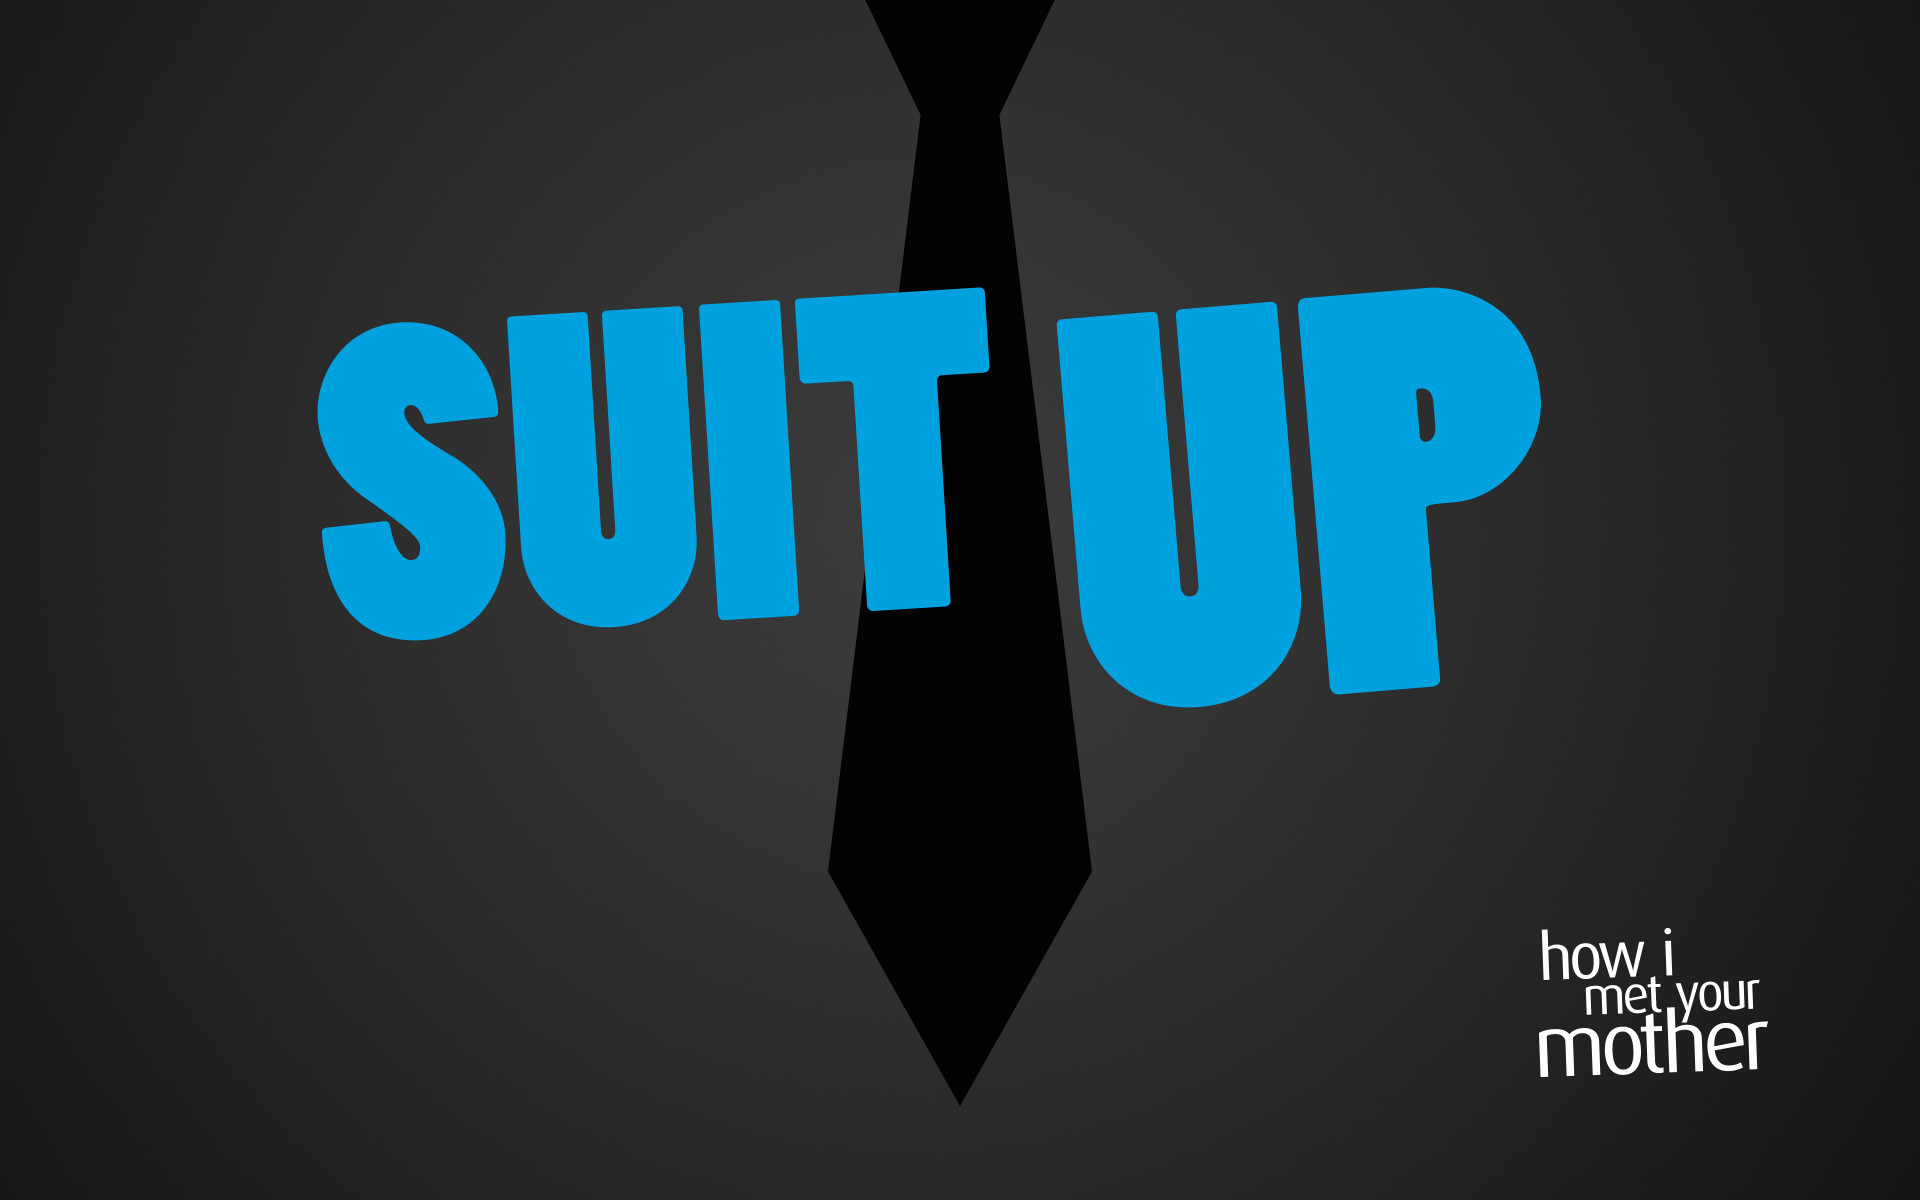 … Suit up – How I Met Your Mother